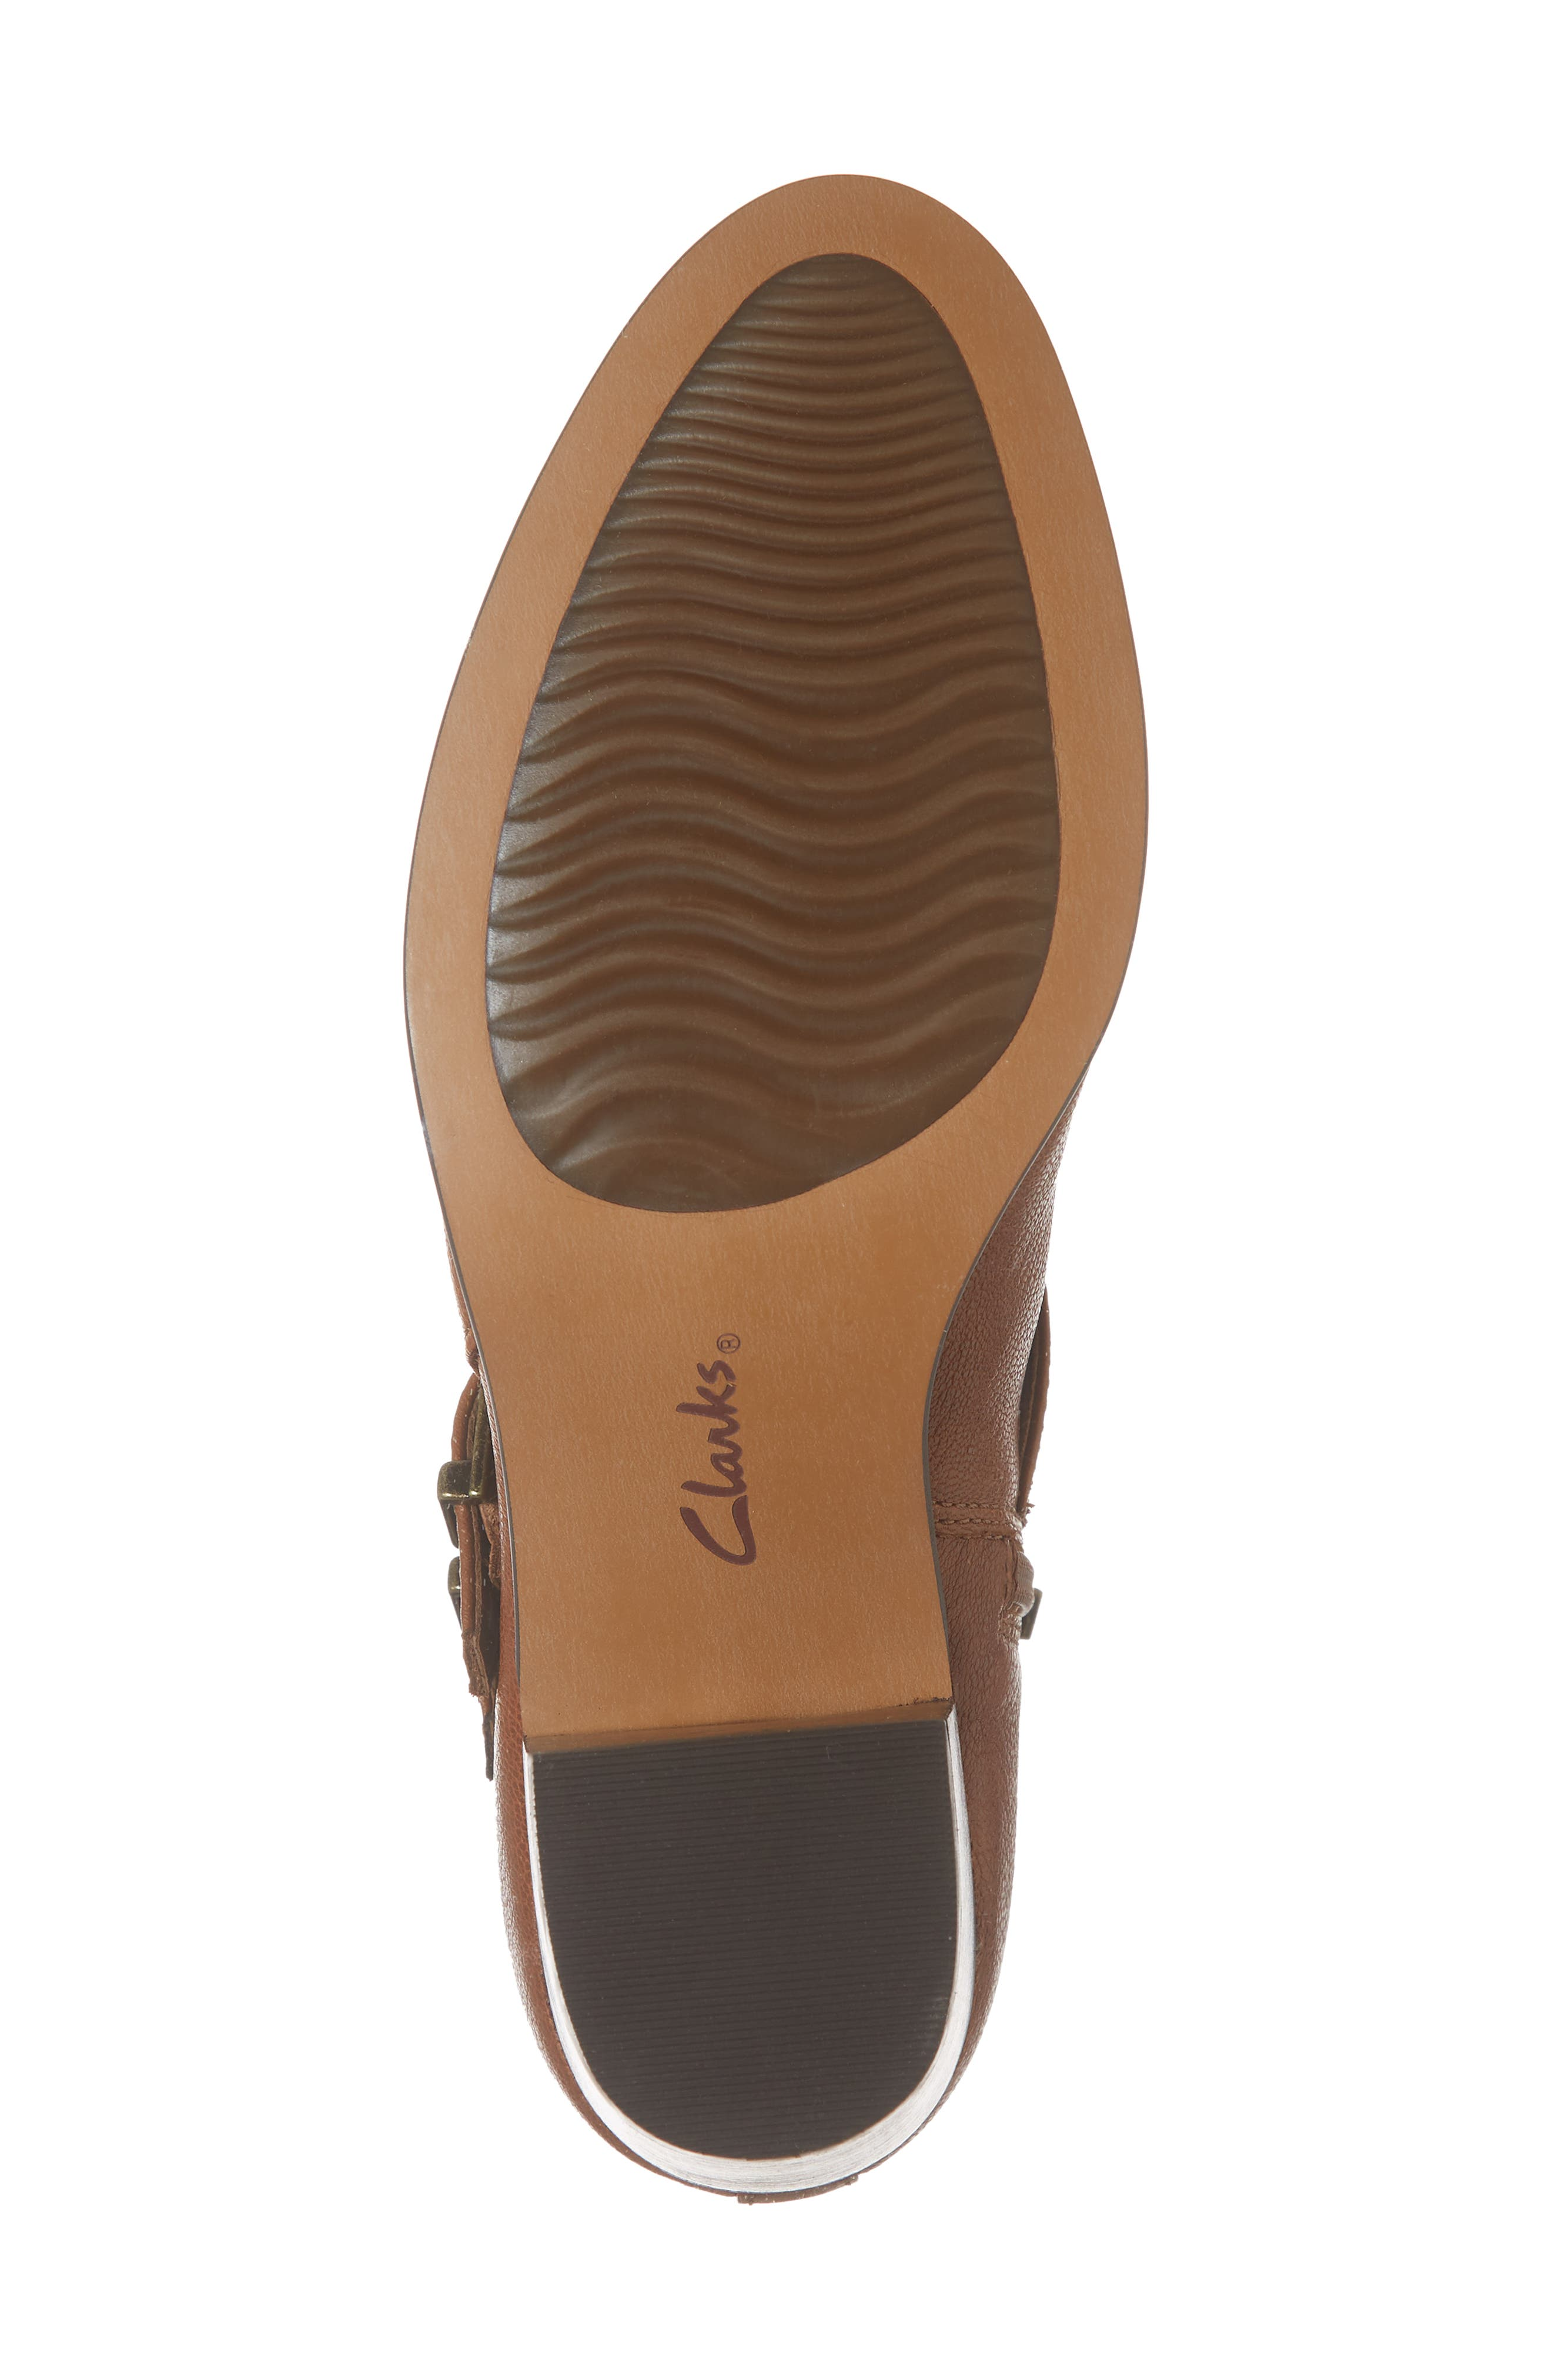 Maypearl Rayna Boot,                             Alternate thumbnail 6, color,                             DARK TAN LEATHER